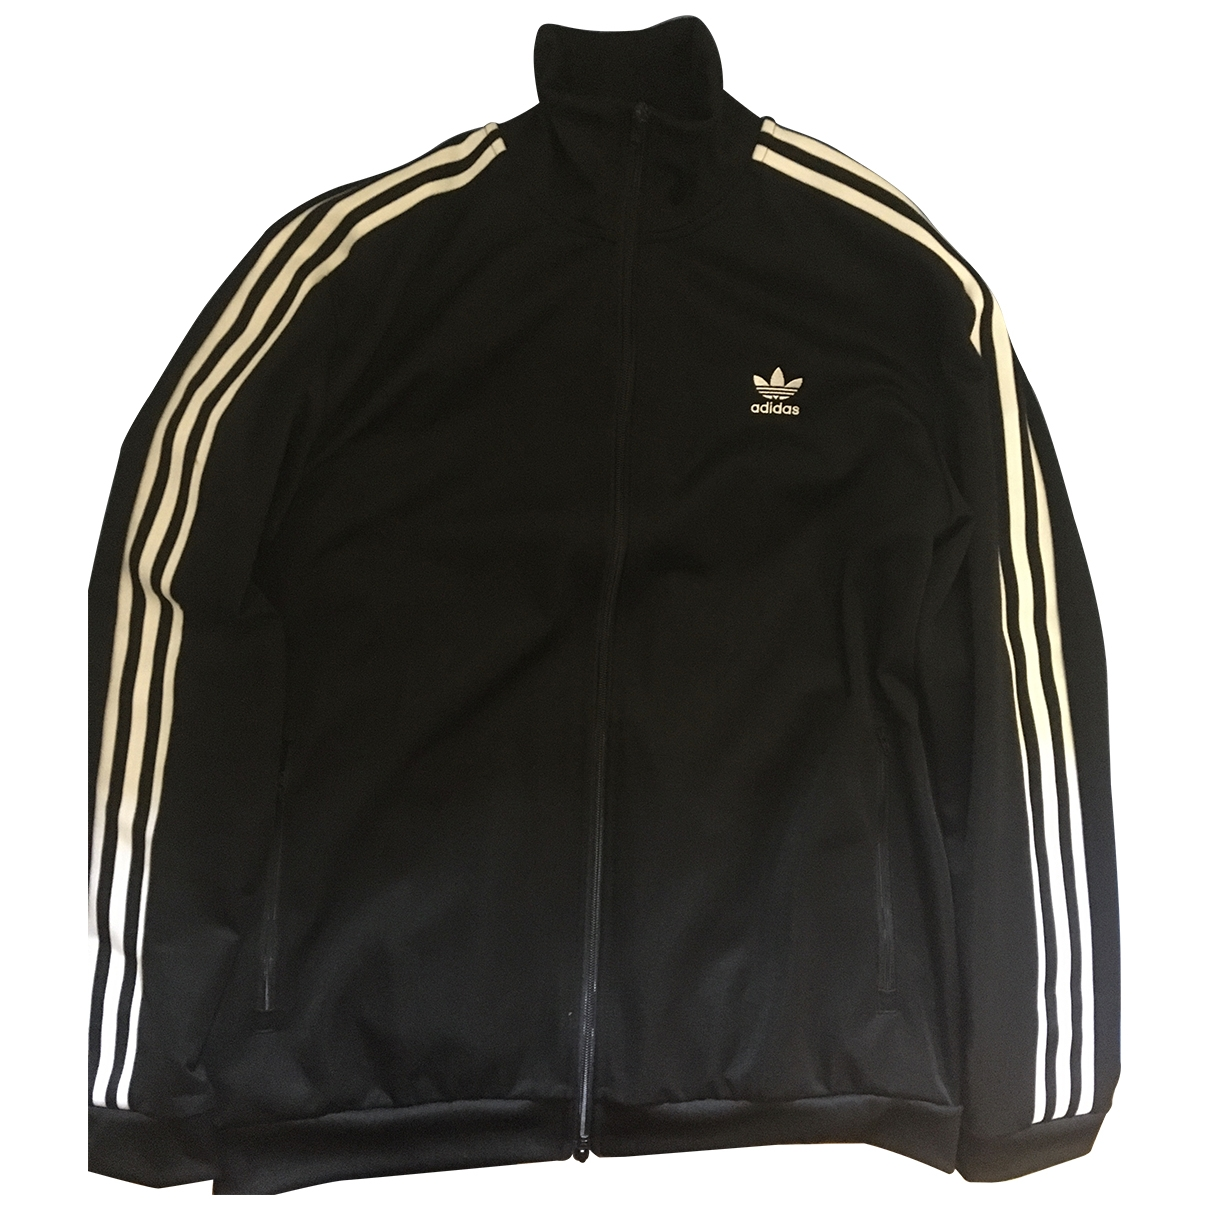 Adidas \N Black jacket  for Men L International